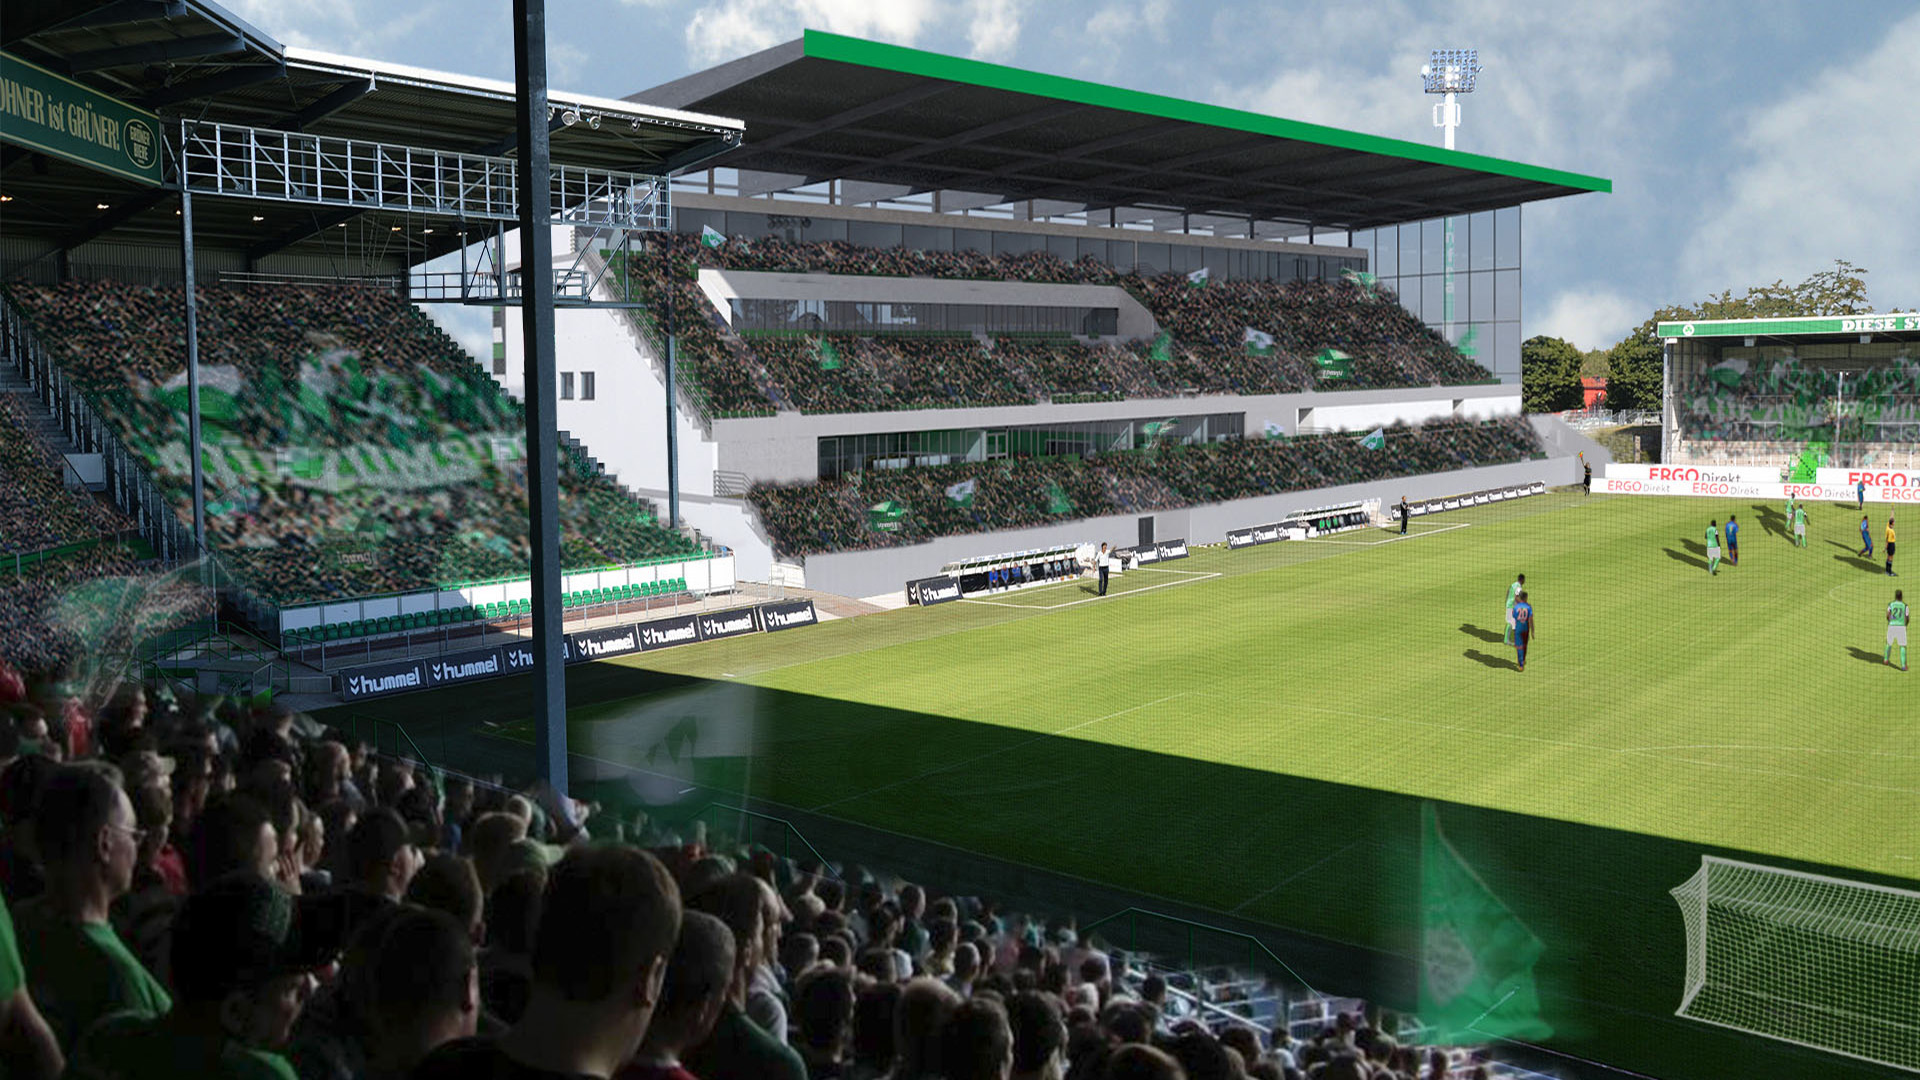 Stadion F 252 Rth Vision4venue We Create Homes For Sport